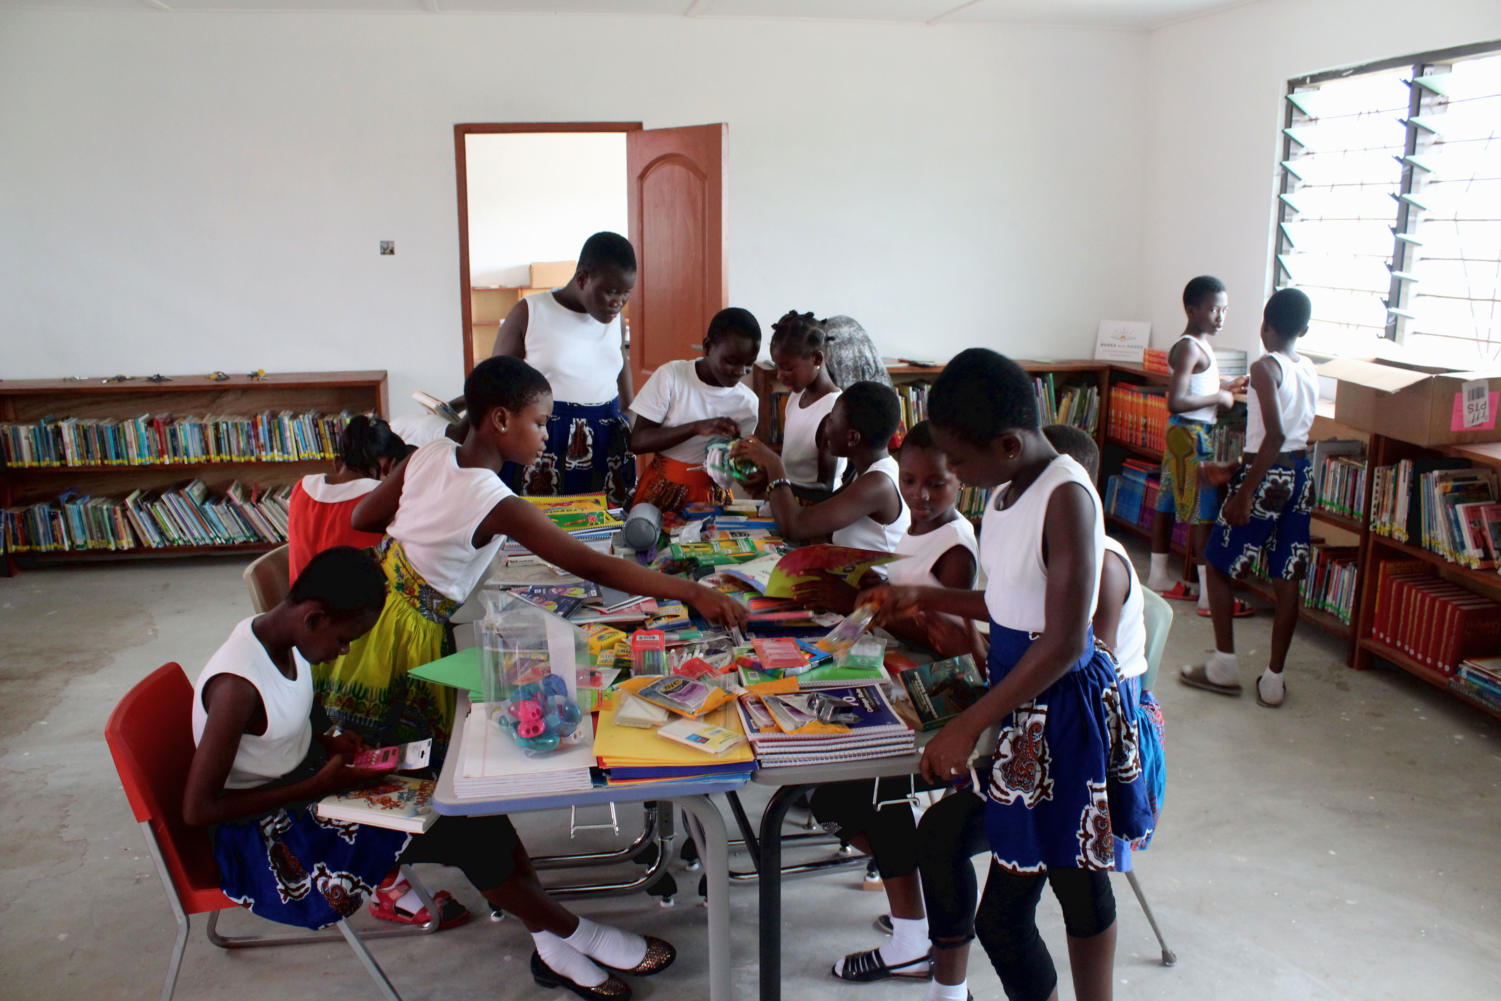 Ghanian children studying in the inaugural year of the NAVA Primary School that was funded by Engineers Without Borders.